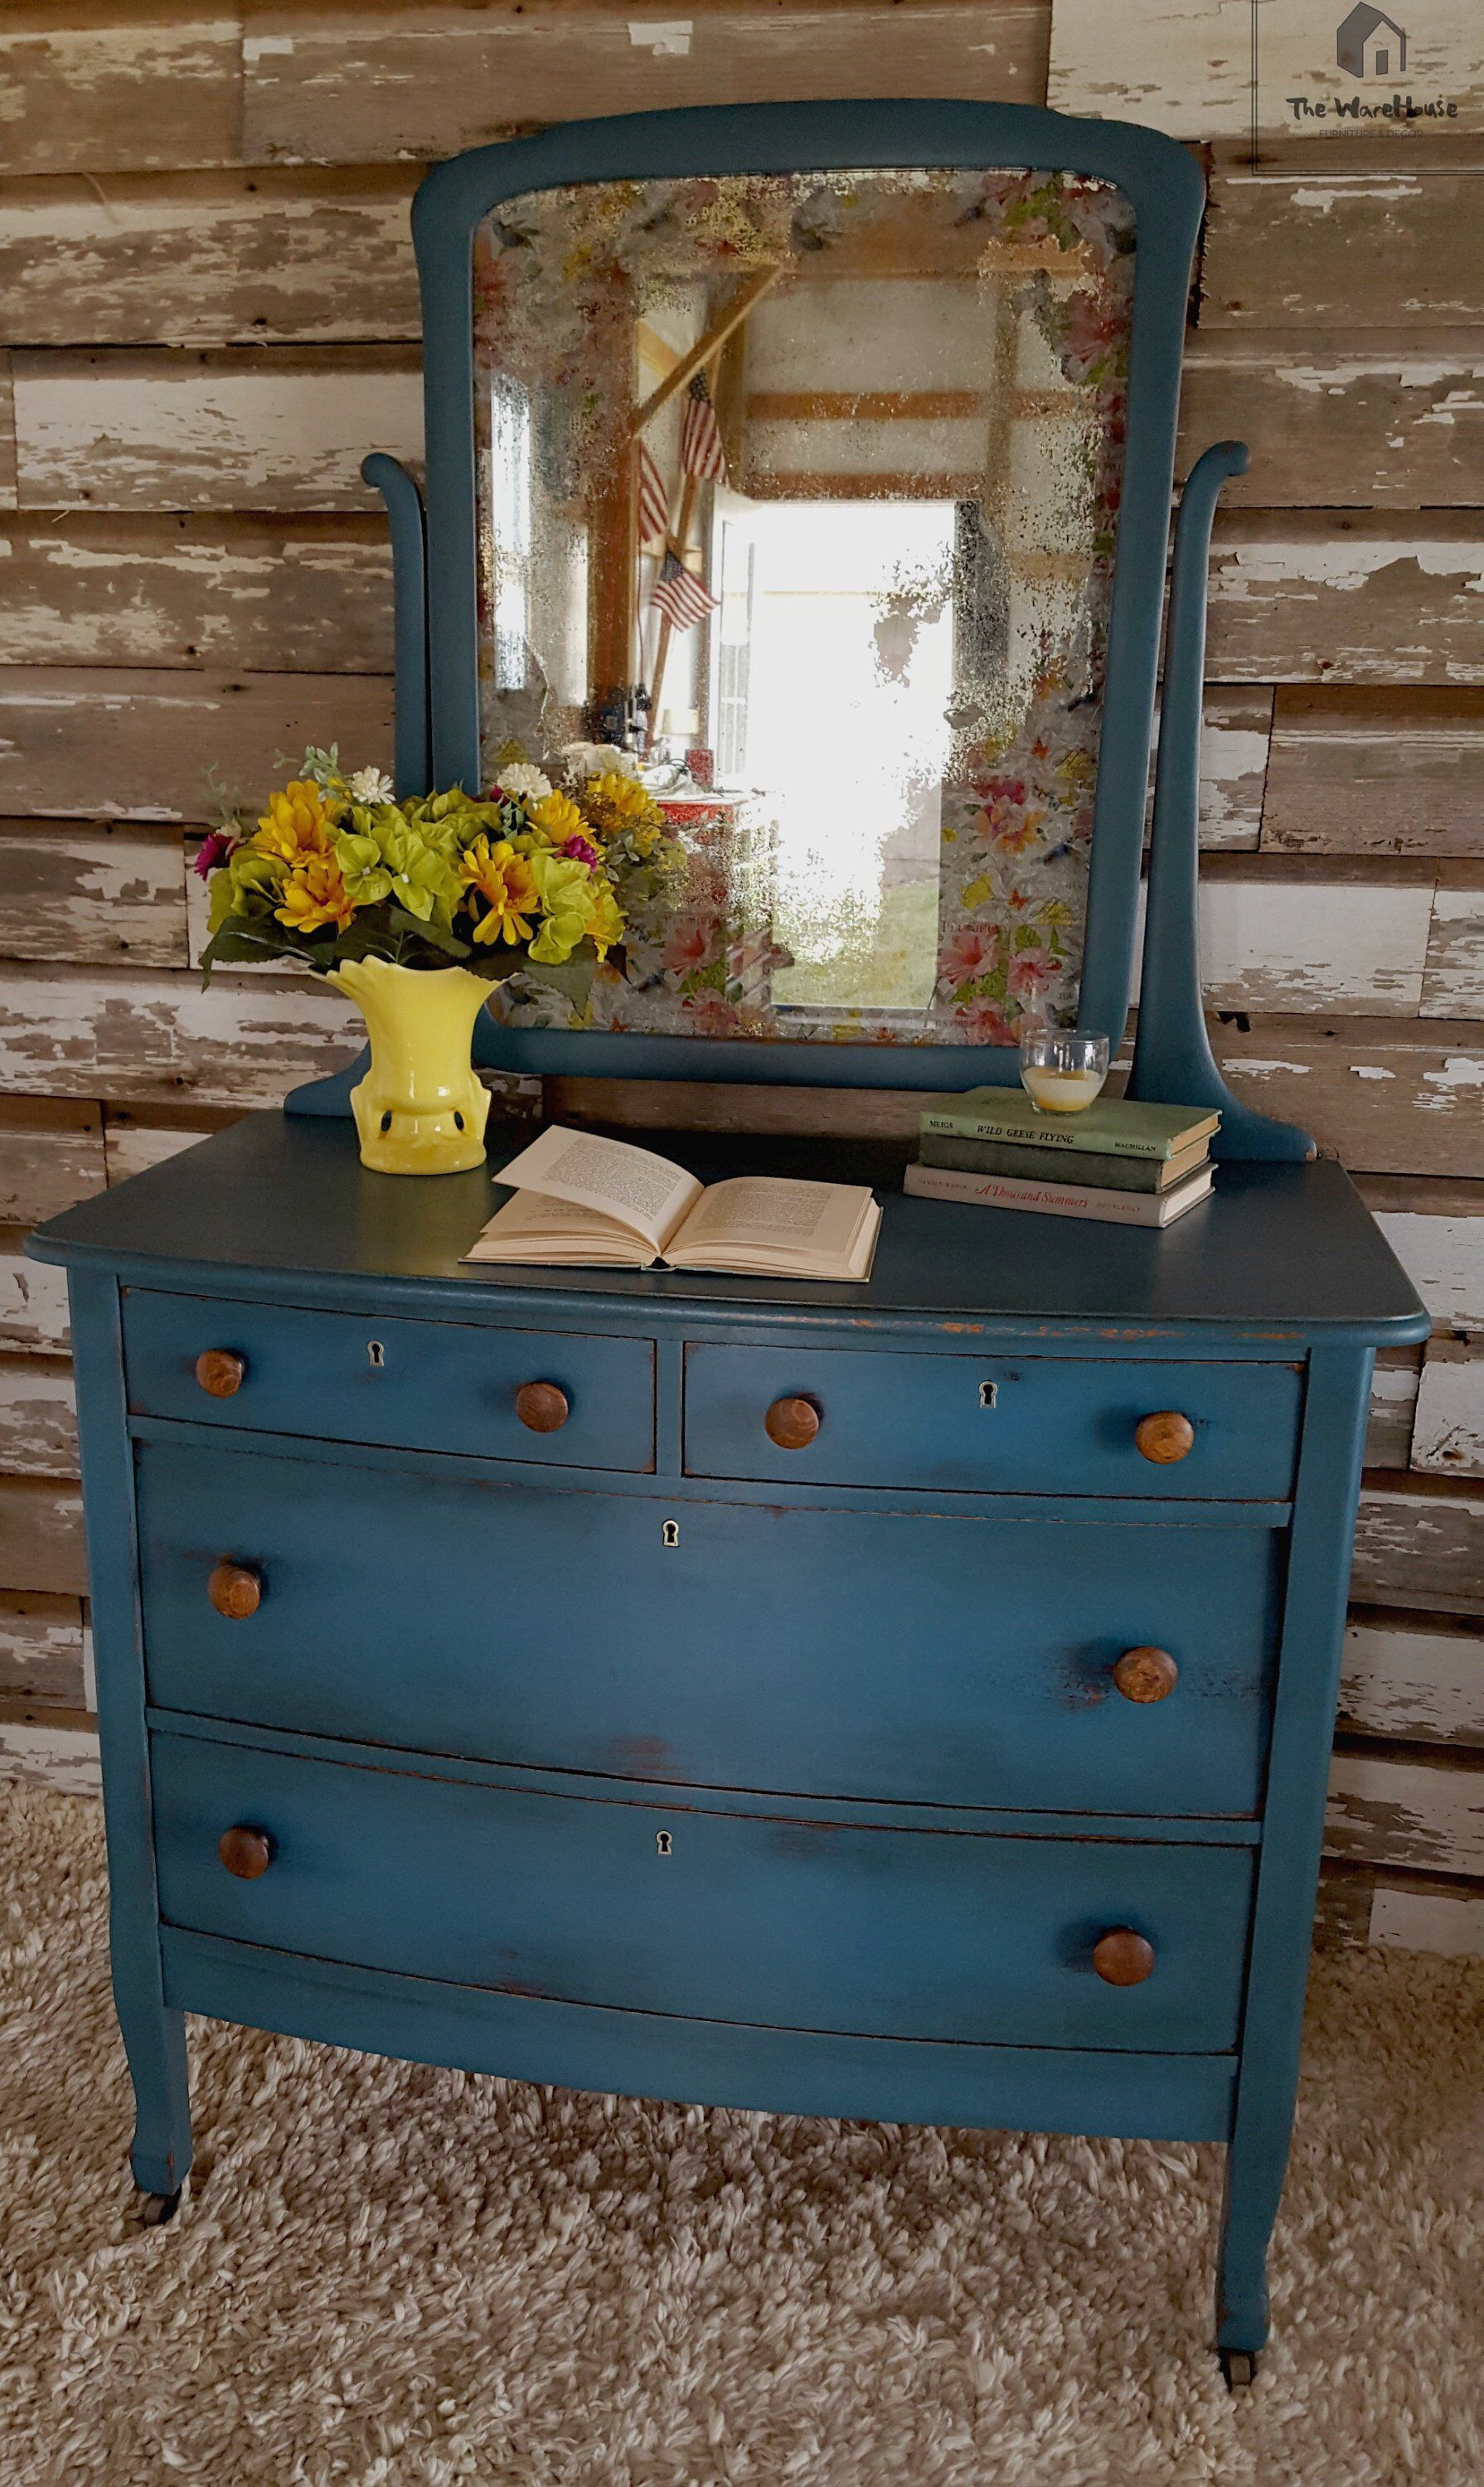 Pin By Shelley Skinner On New Trailer Floral Mirror Unique